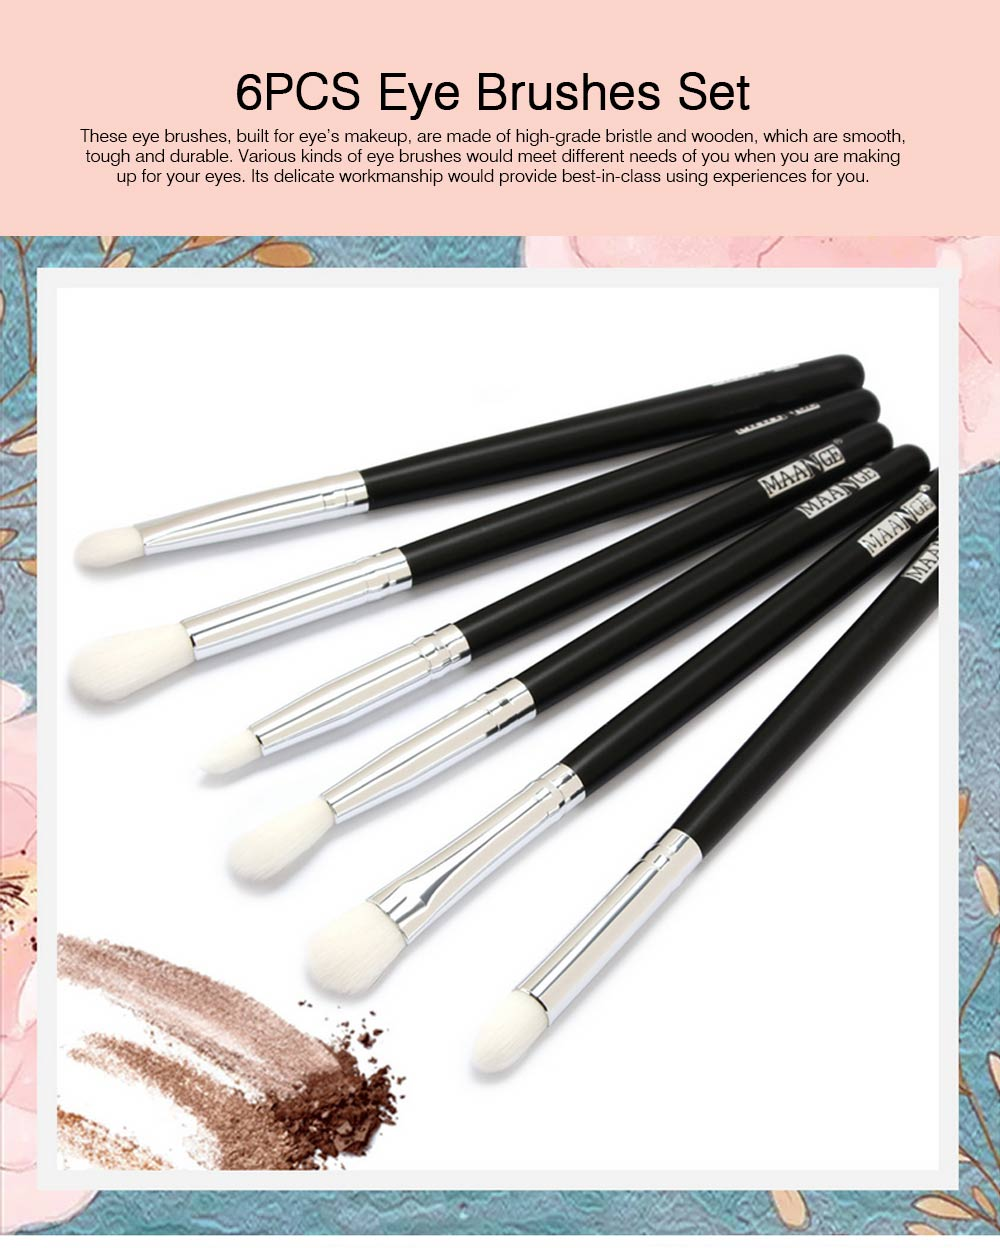 Delicate Professional Makeup Eye Shadow Brushes Suit, Minimalist 6PCS Wooden Multiple Eye Brushes Set 0